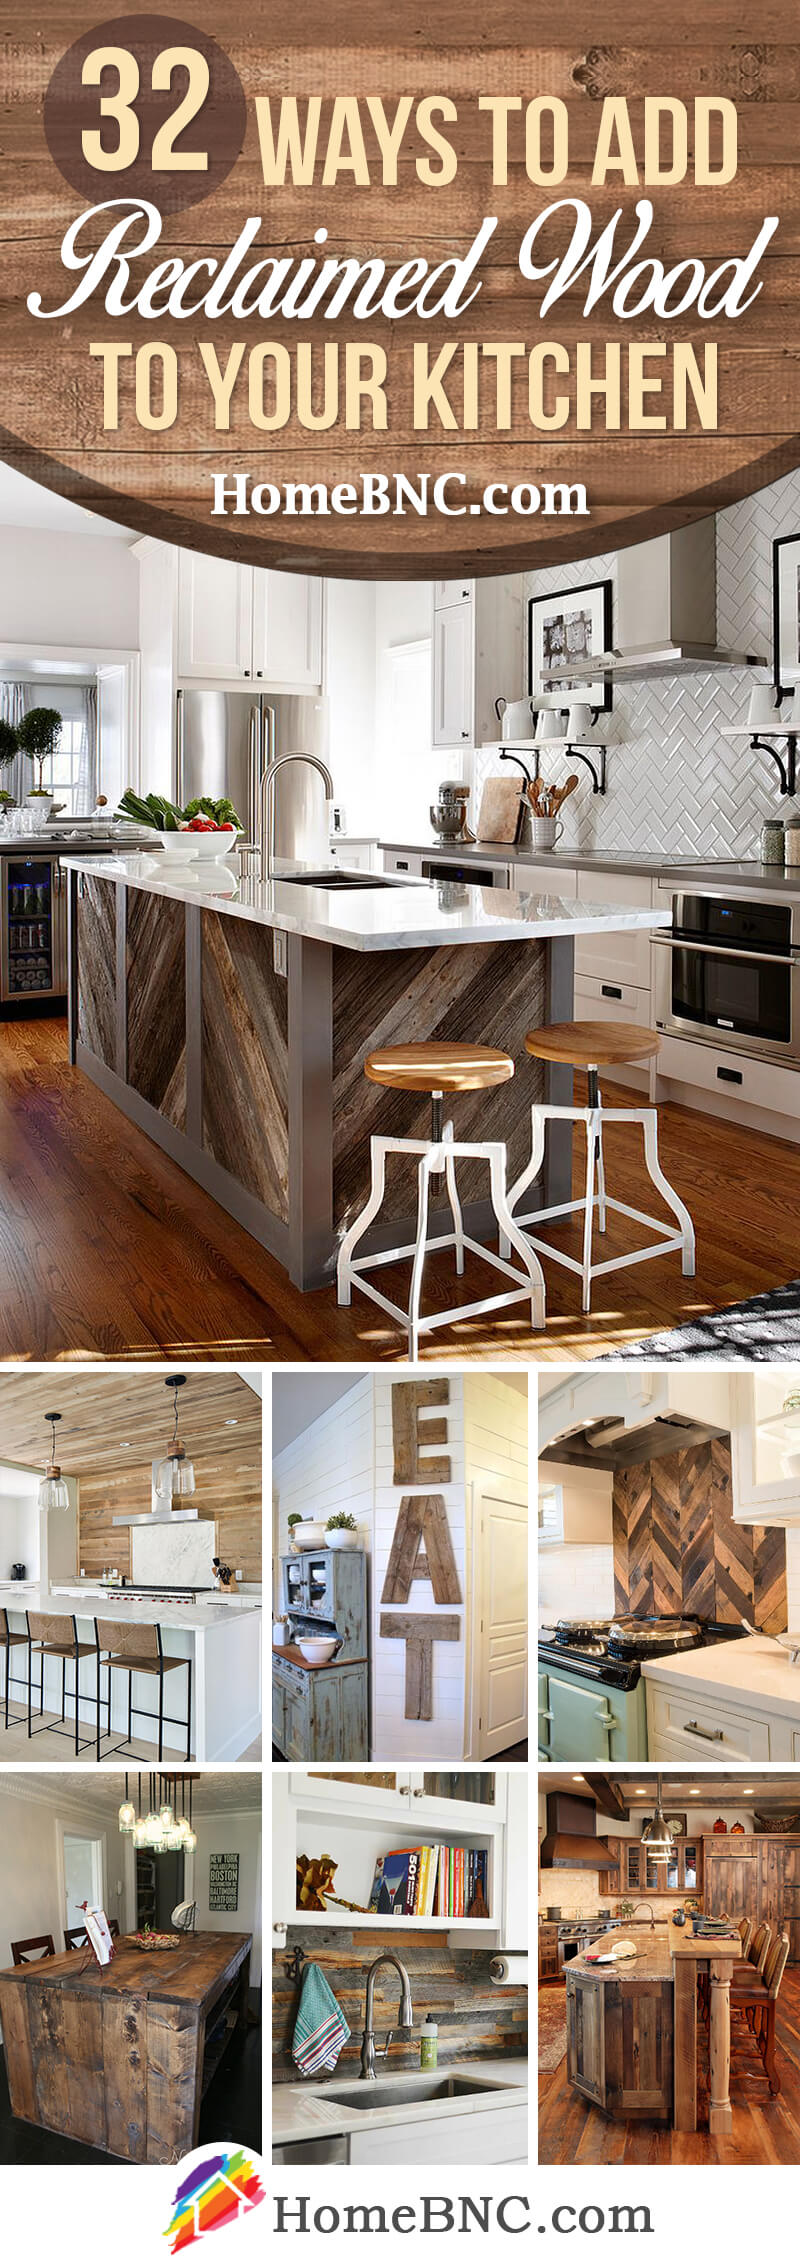 Reclaimed Wood Kitchen Designs